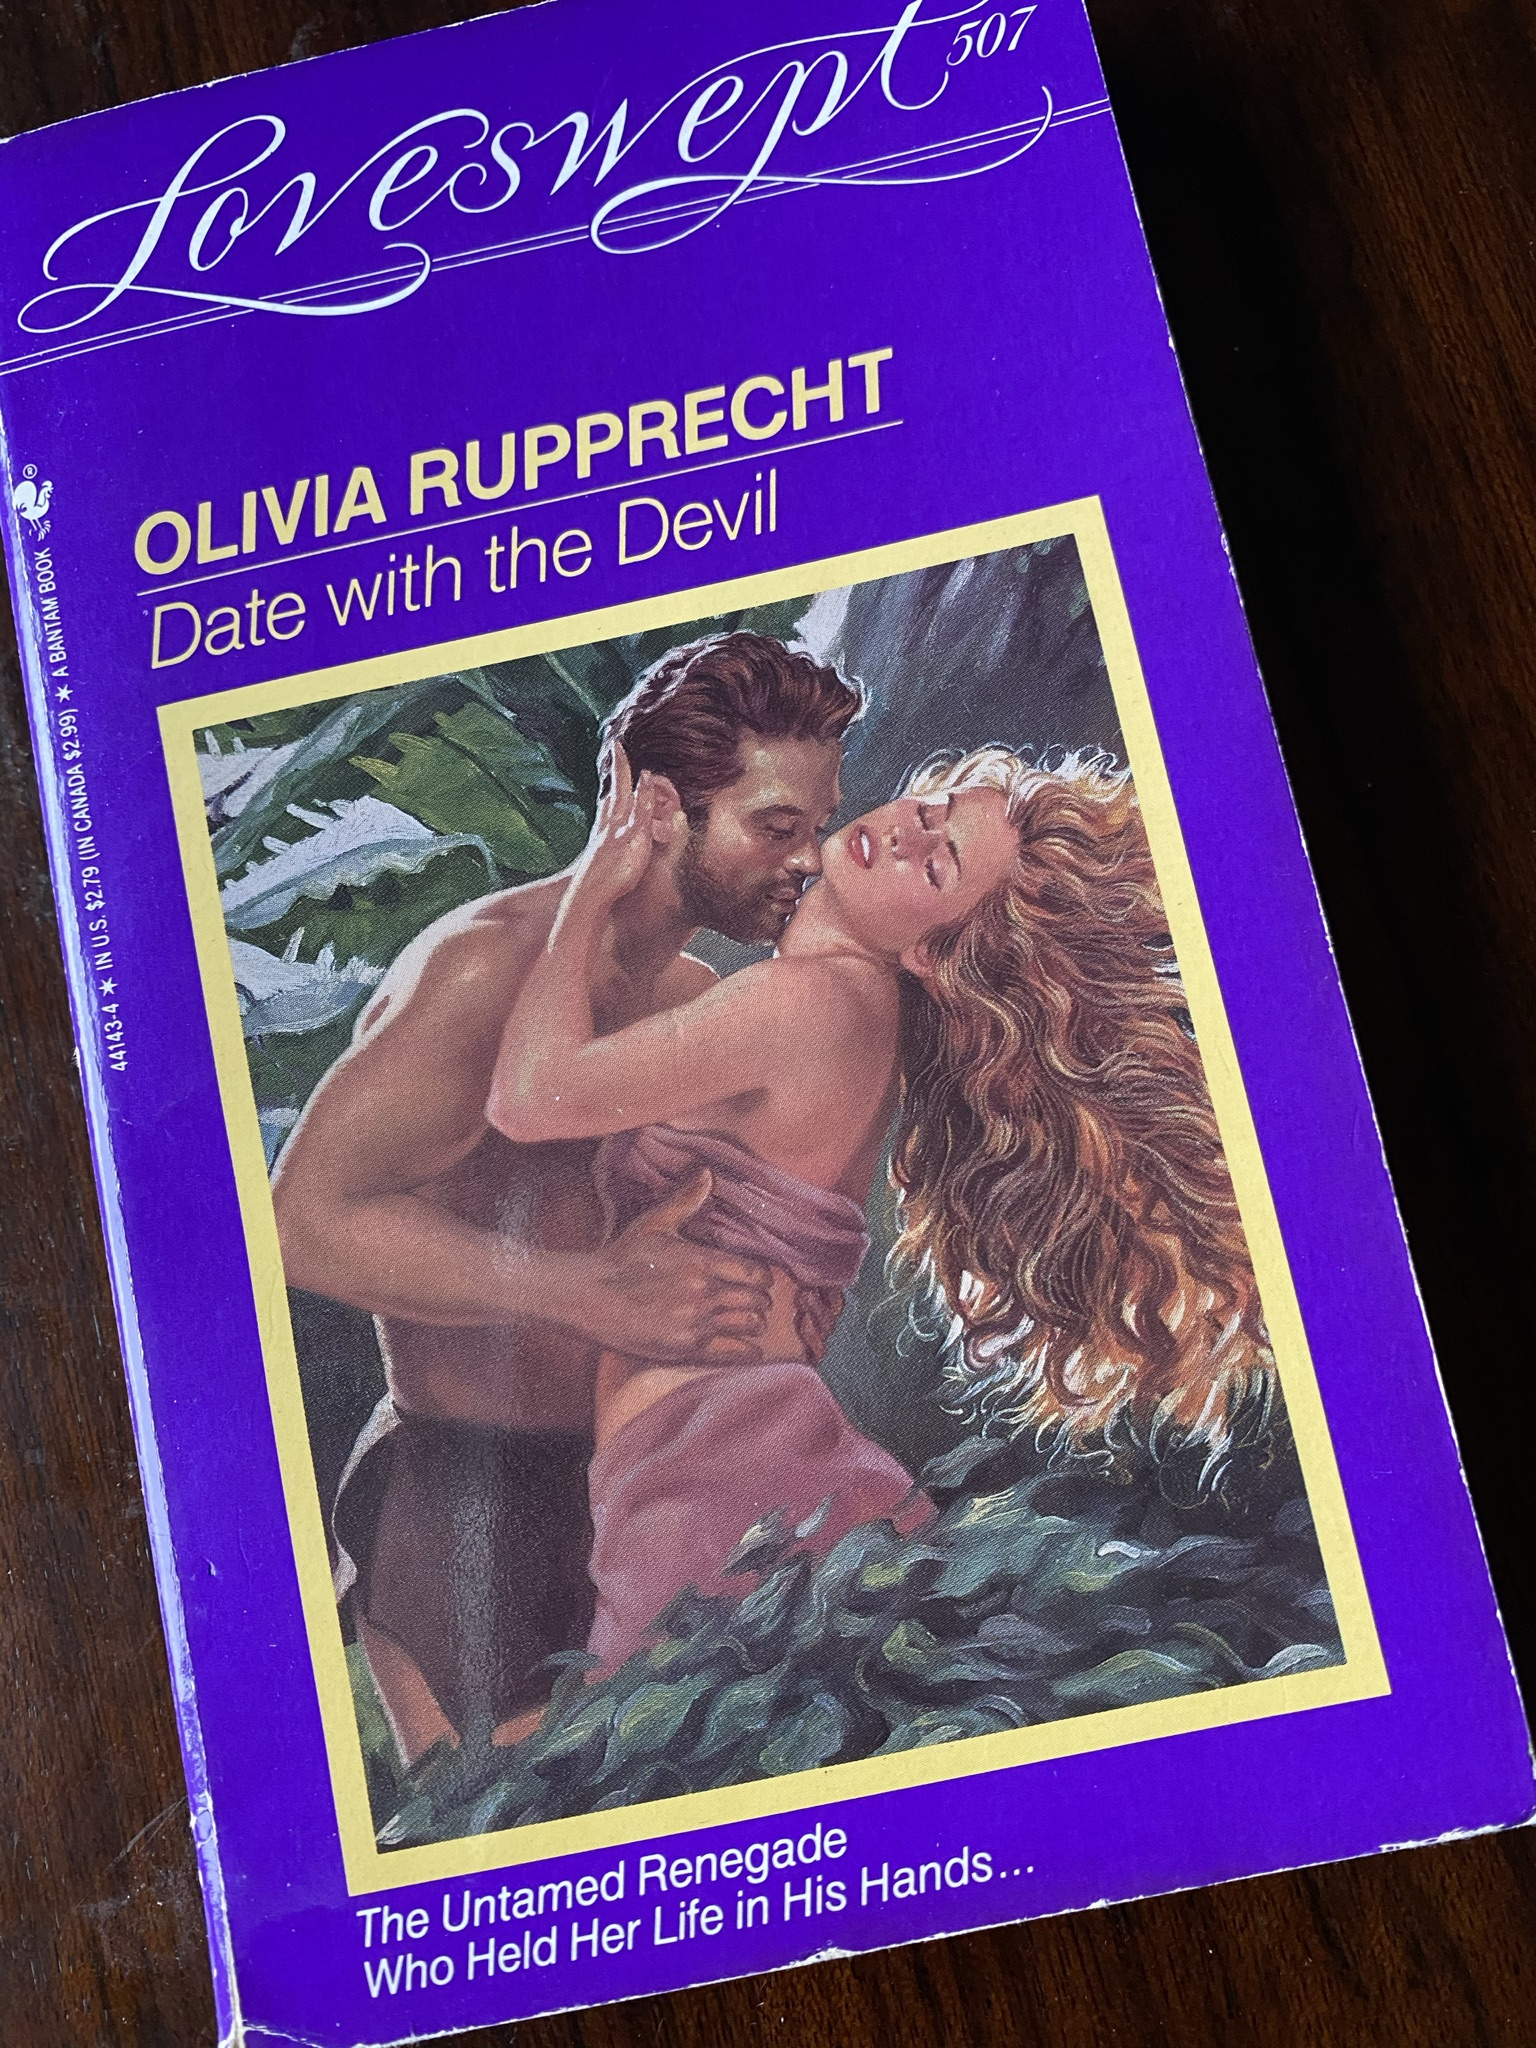 Date with the Devil by Olivia Rupprecht was published in the Loveswept imprint